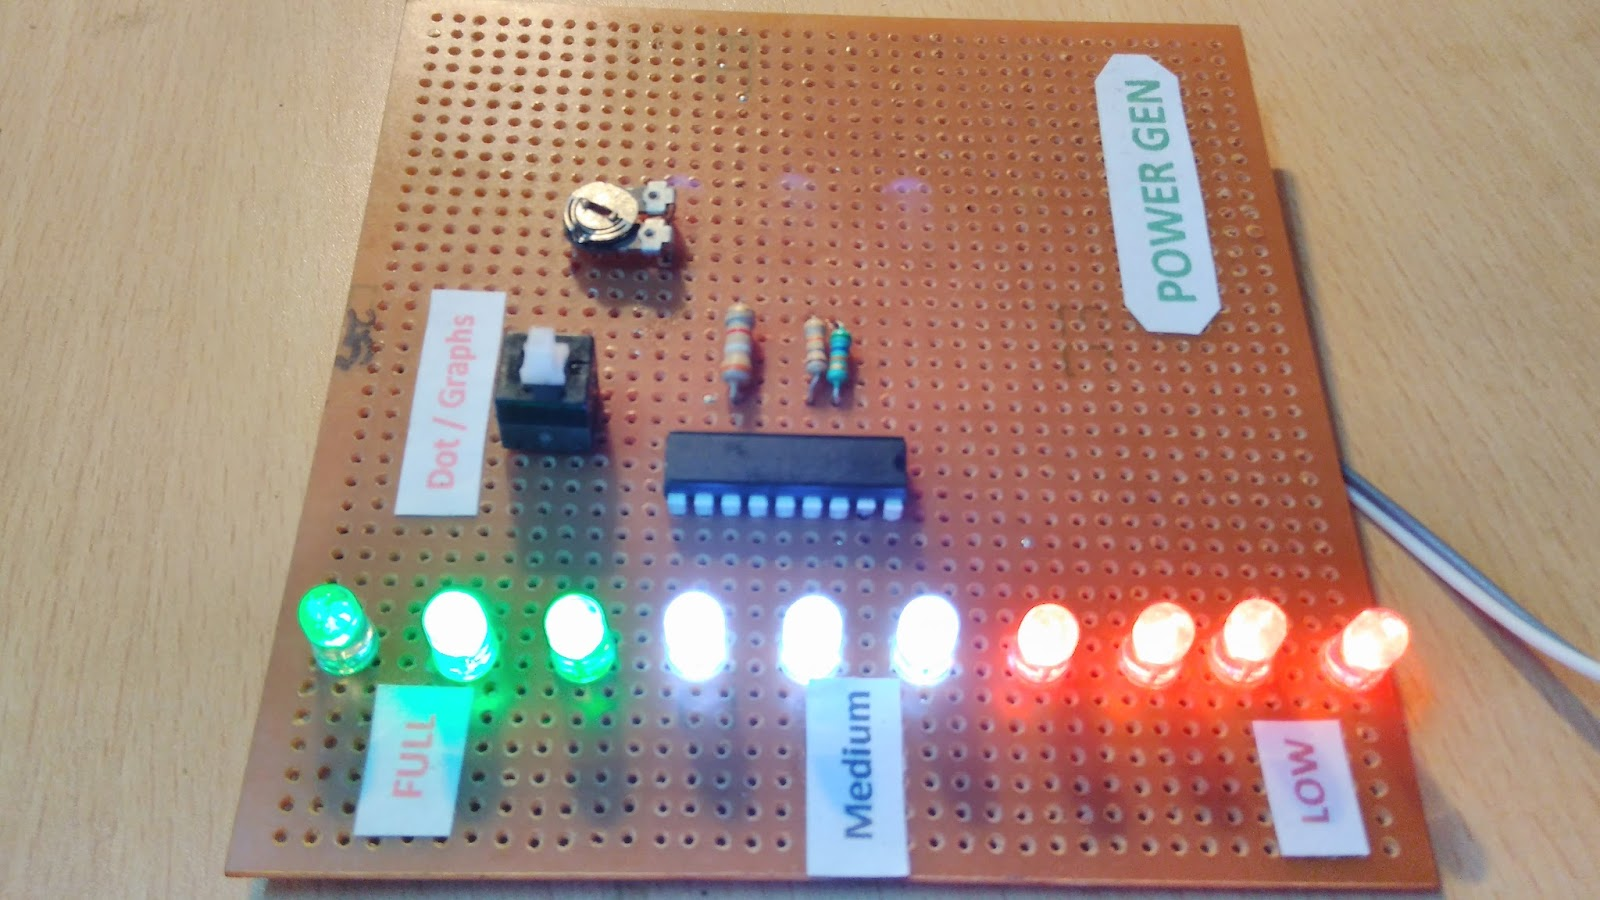 12v Battery Indicator Level Voltage And Checking Using Lm3915 Ic